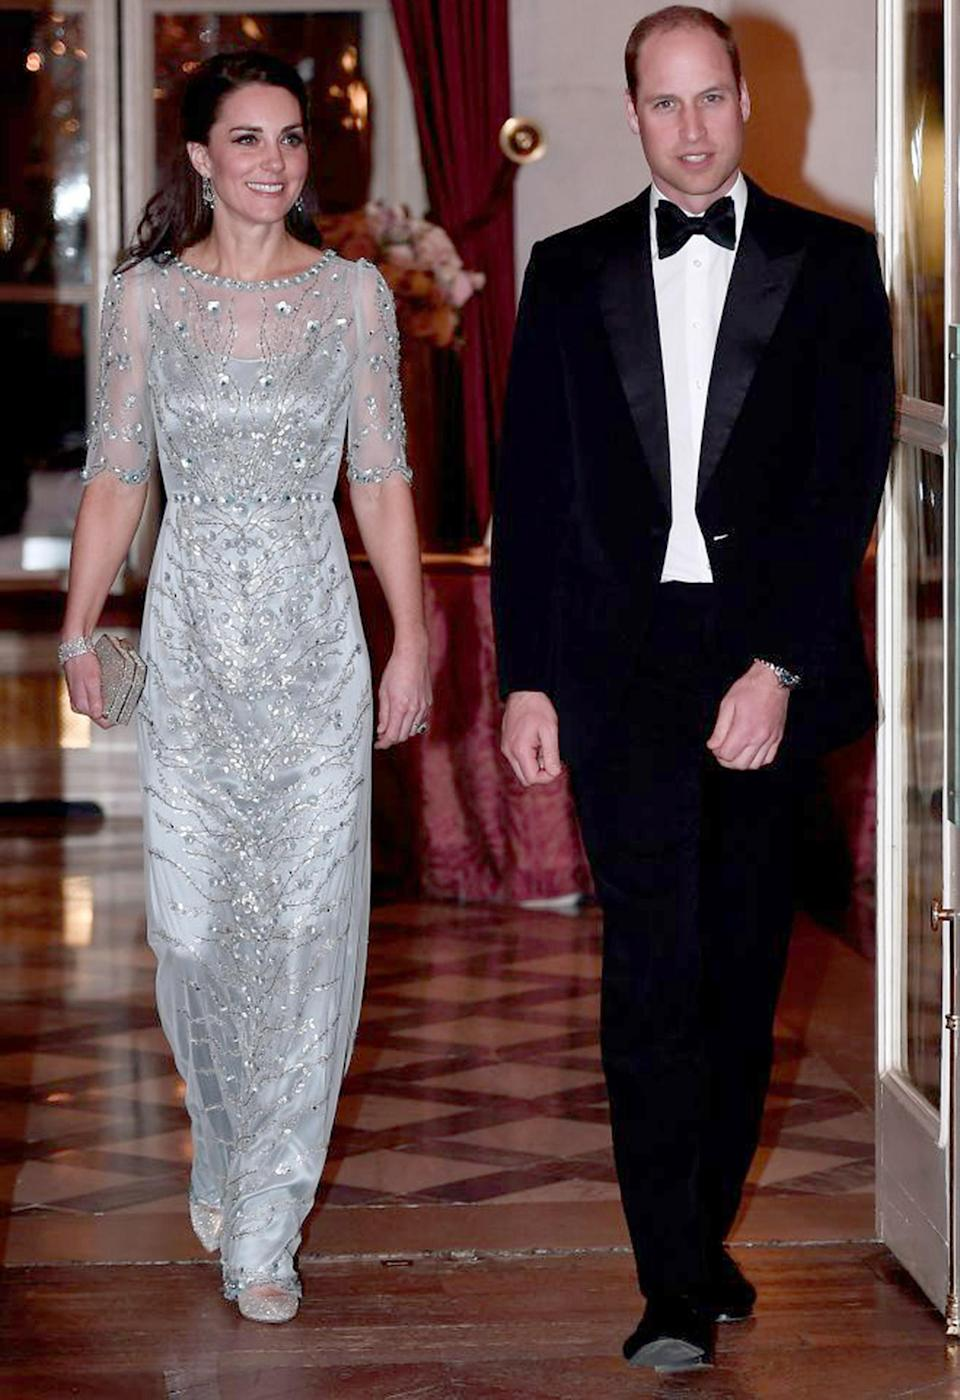 <p><strong>When:</strong> March 17, 2017 <strong>Where:</strong> Dinner gala at the British Embassy in Paris <strong>Wearing:</strong> Jenny Packham ice-blue embellished gown <strong>Get the Look:</strong> Jenny Packham Beaded Long-Sleeve Boat-Neck Dress, $4,715; <span>neimanmarcus.com</span> Adrianna Papell Sequined Beaded Tulle Mermaid Gown, $349; <span>macys.com</span></p>